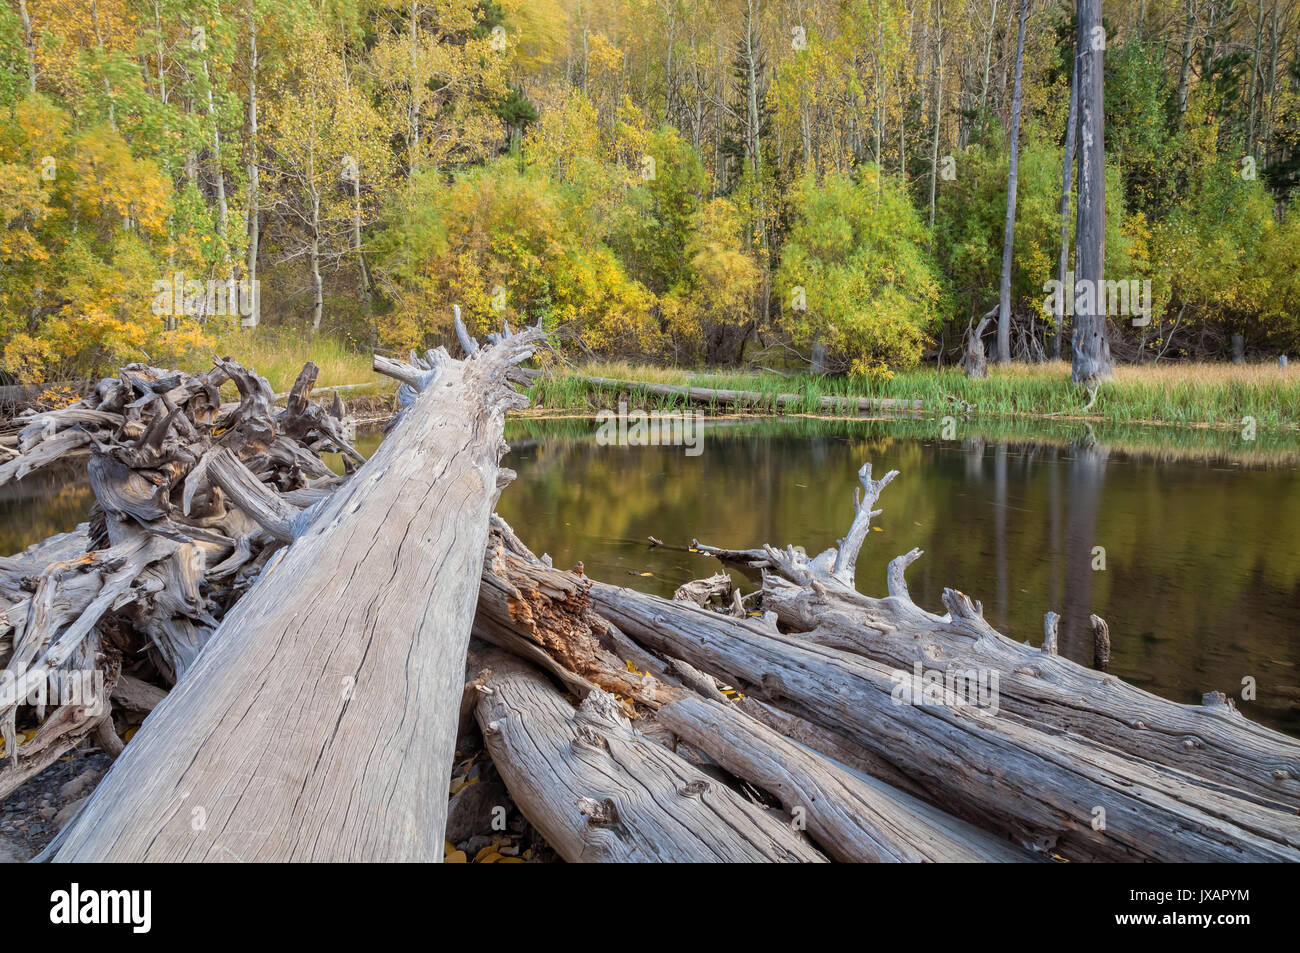 Dead redwood trees and the fall foliage along the river bend at June Lake Loop, June Lake, Eastern Sierra Nevada Stock Photo